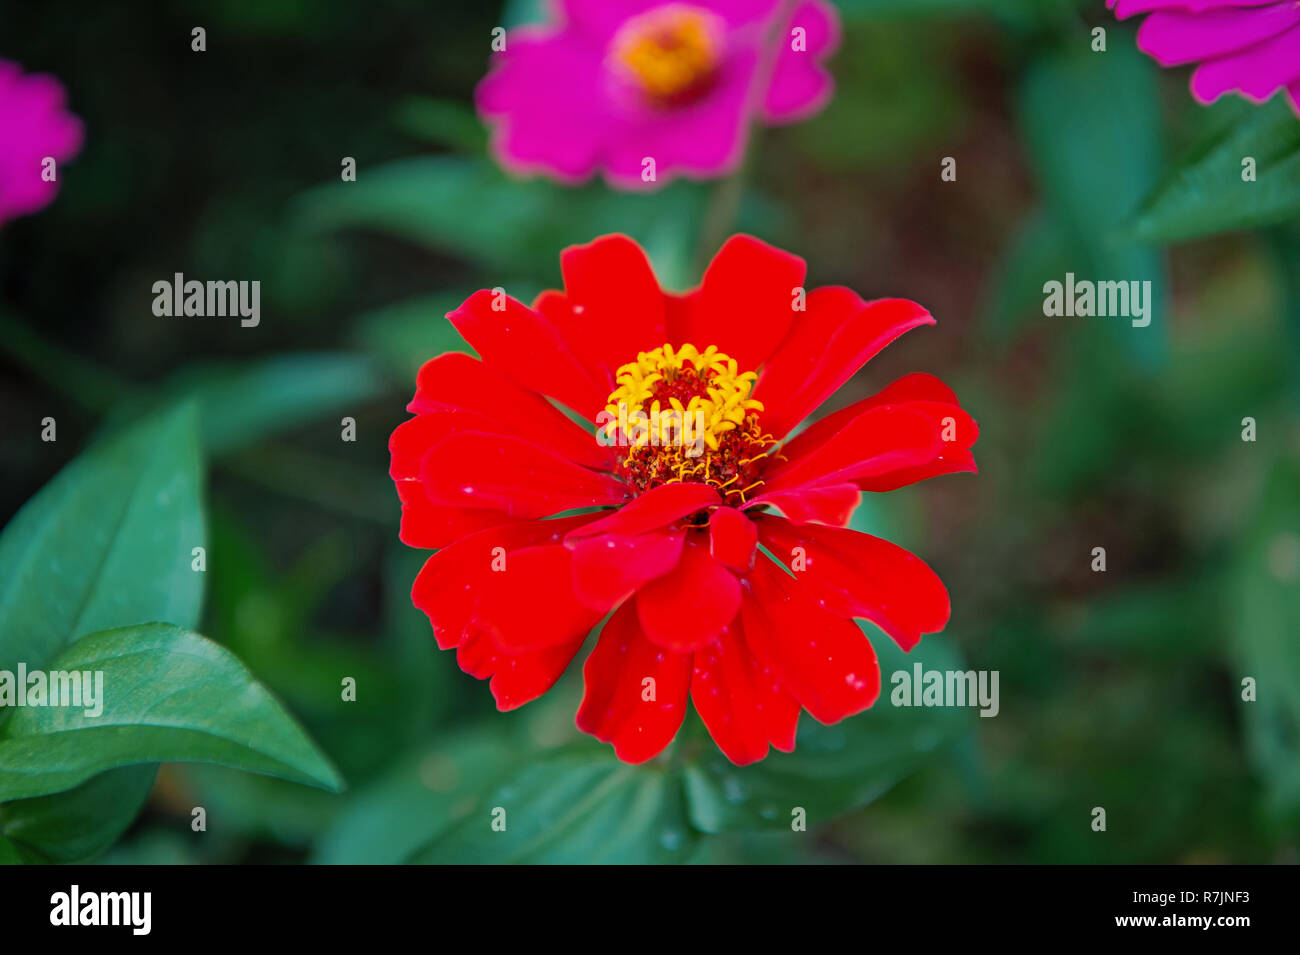 flower red color on blurred green natural background - Stock Image